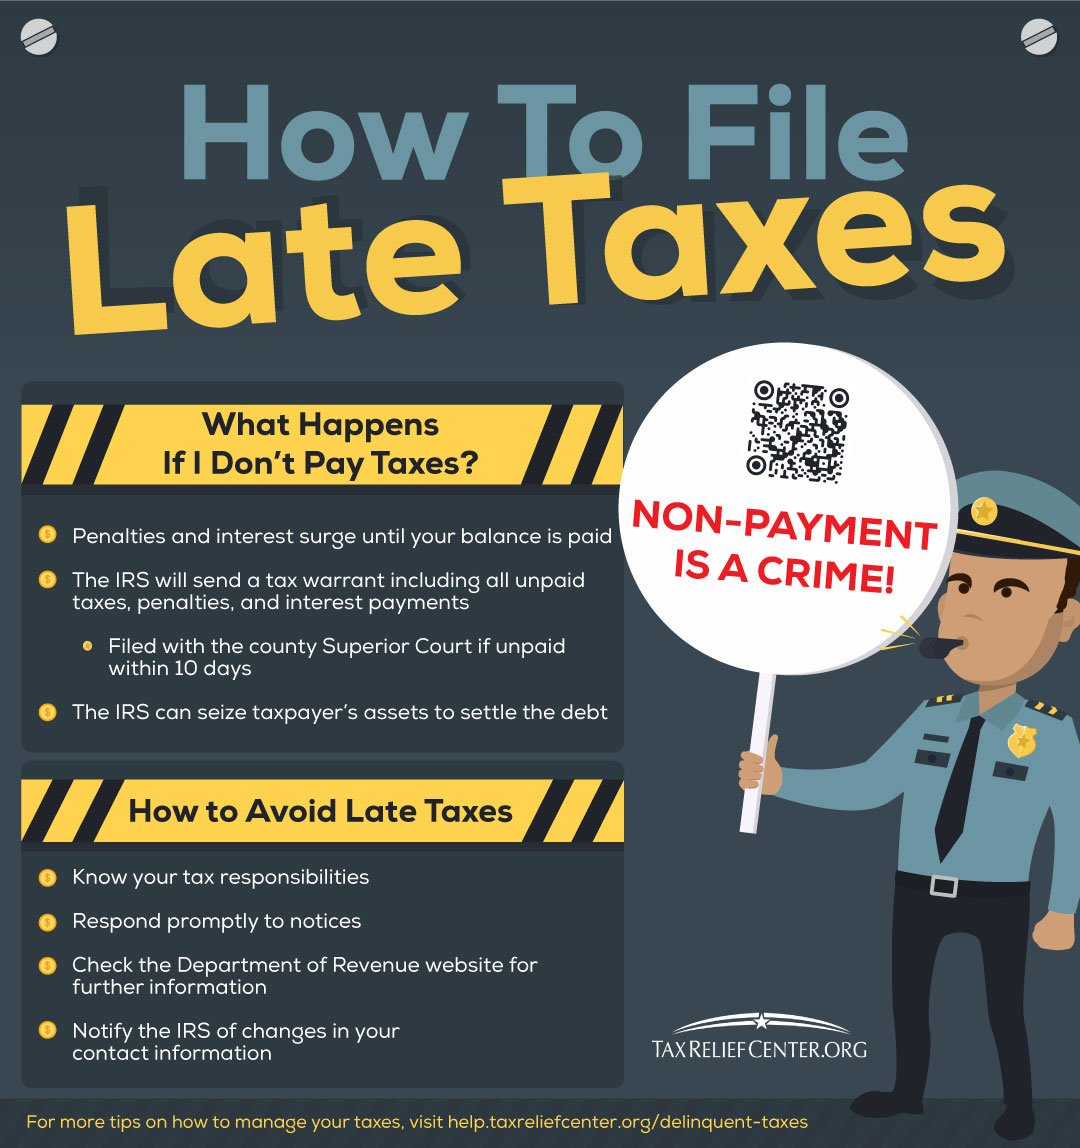 Delinquent Taxes | Delinquent Taxes: How To Pay Off Late Taxes [INFOGRAPHIC]